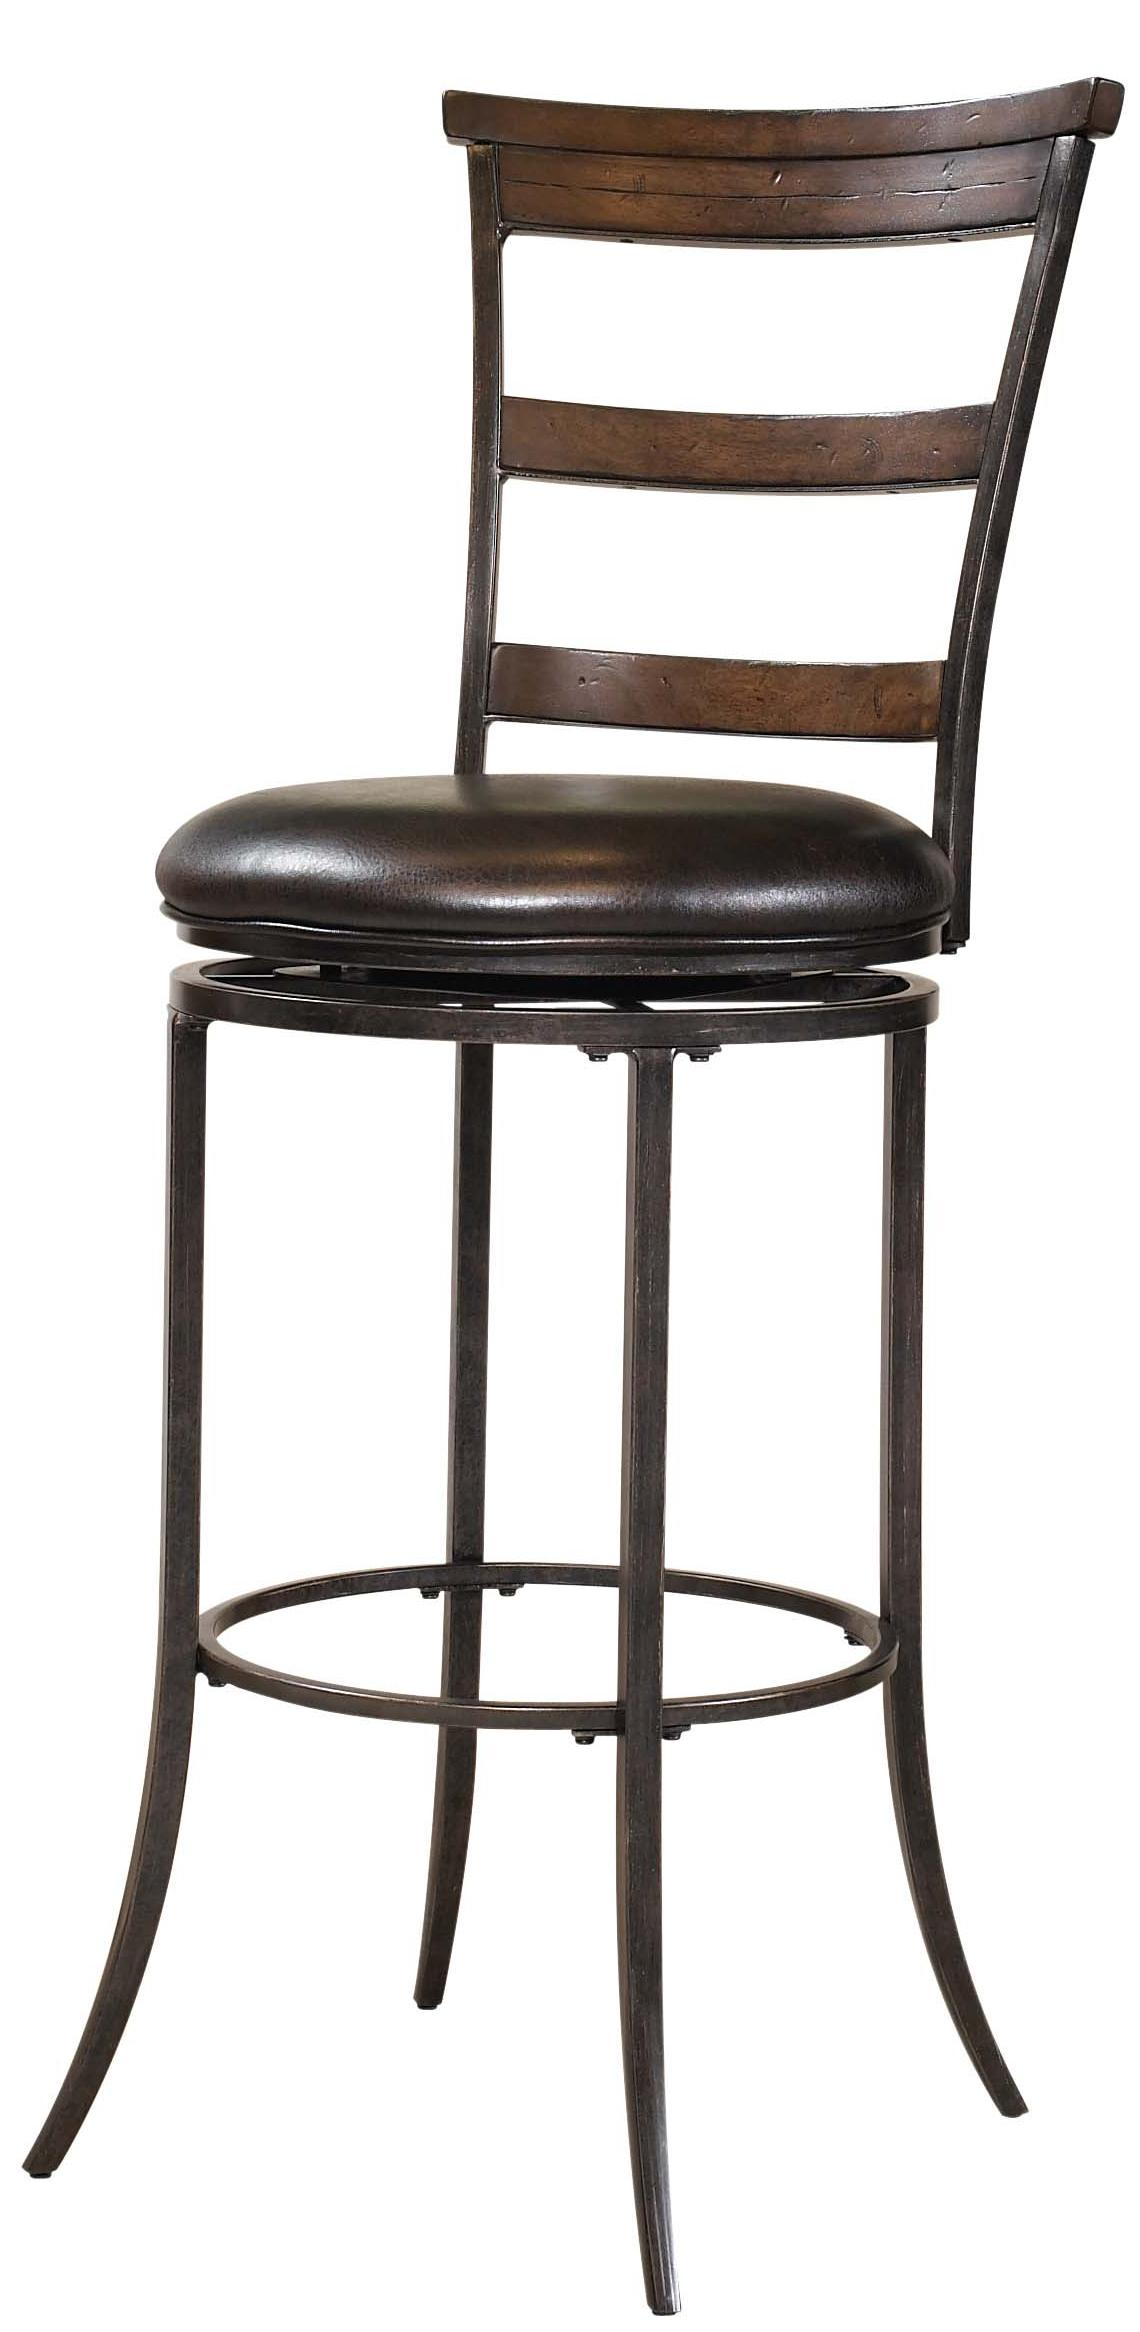 Hillsdale Metal Stools Cameron Swivel Ladder Back Counter Stool - Item Number: 4671-828